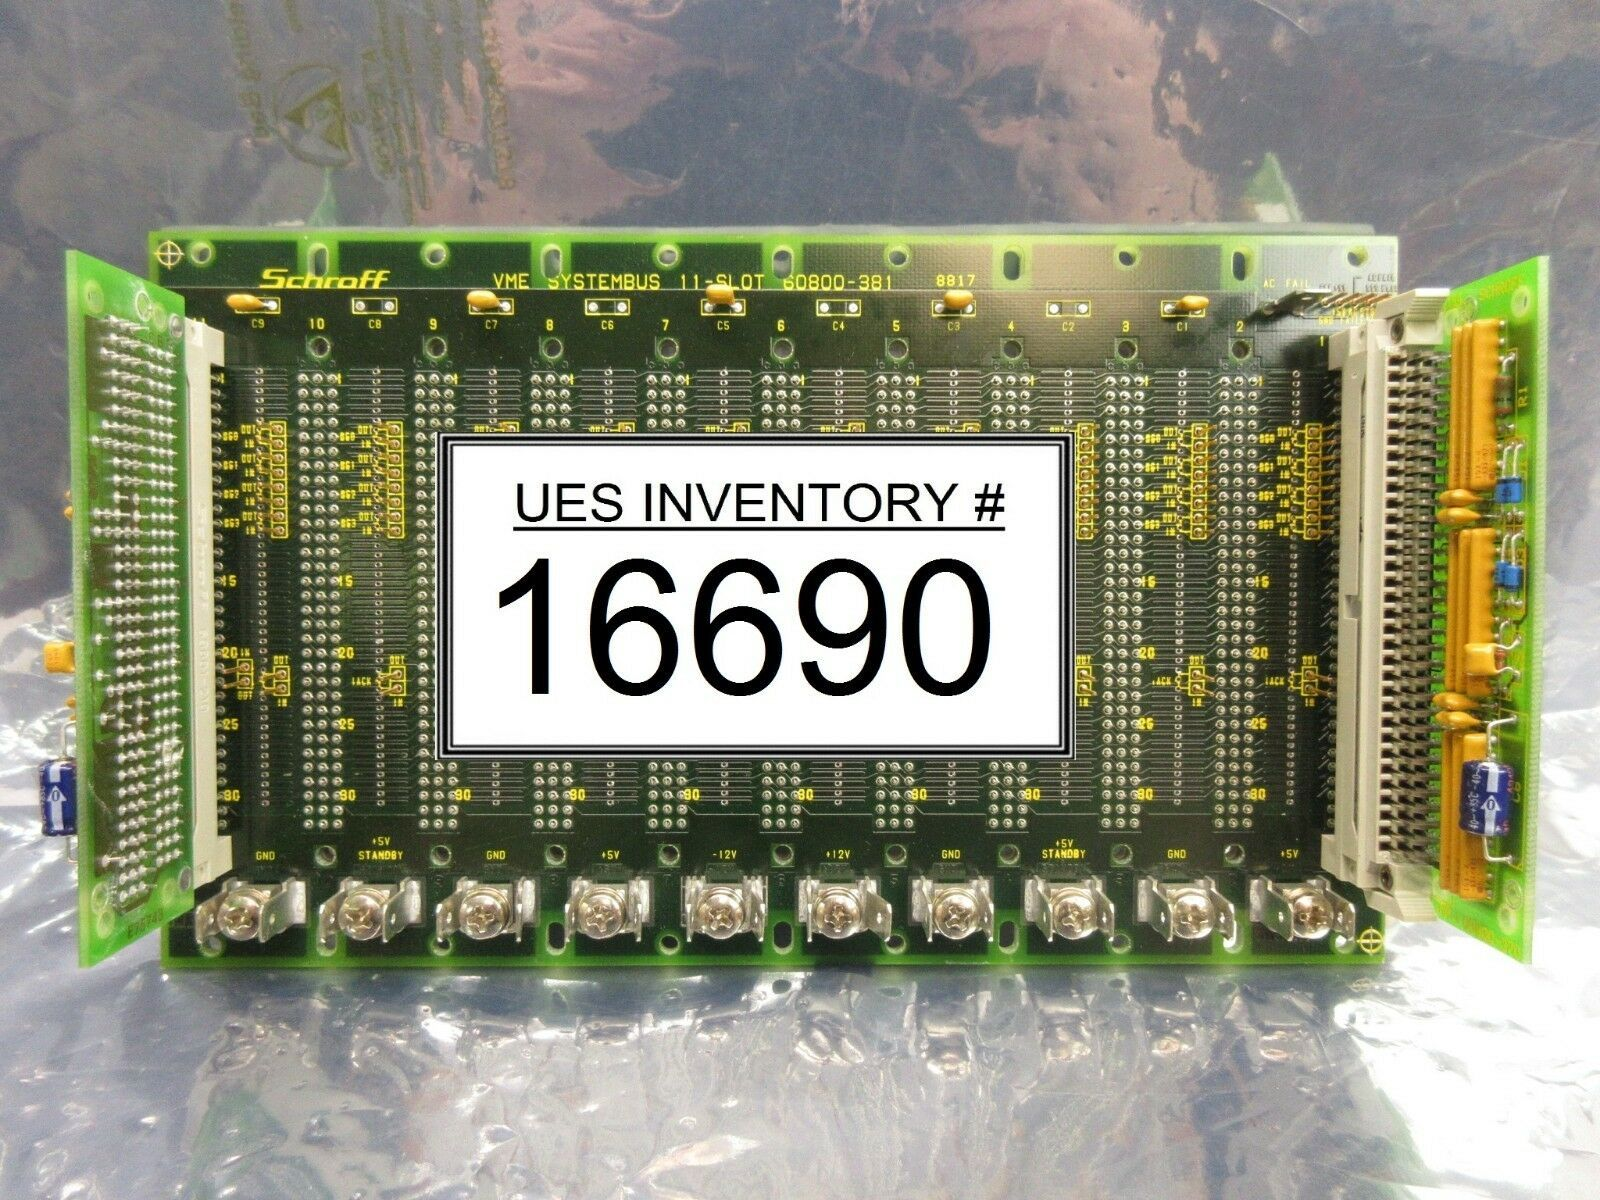 Schroff 60800-381 VME 11-Slot Backplane Board PCB with 60800-370 Ultratech 4700